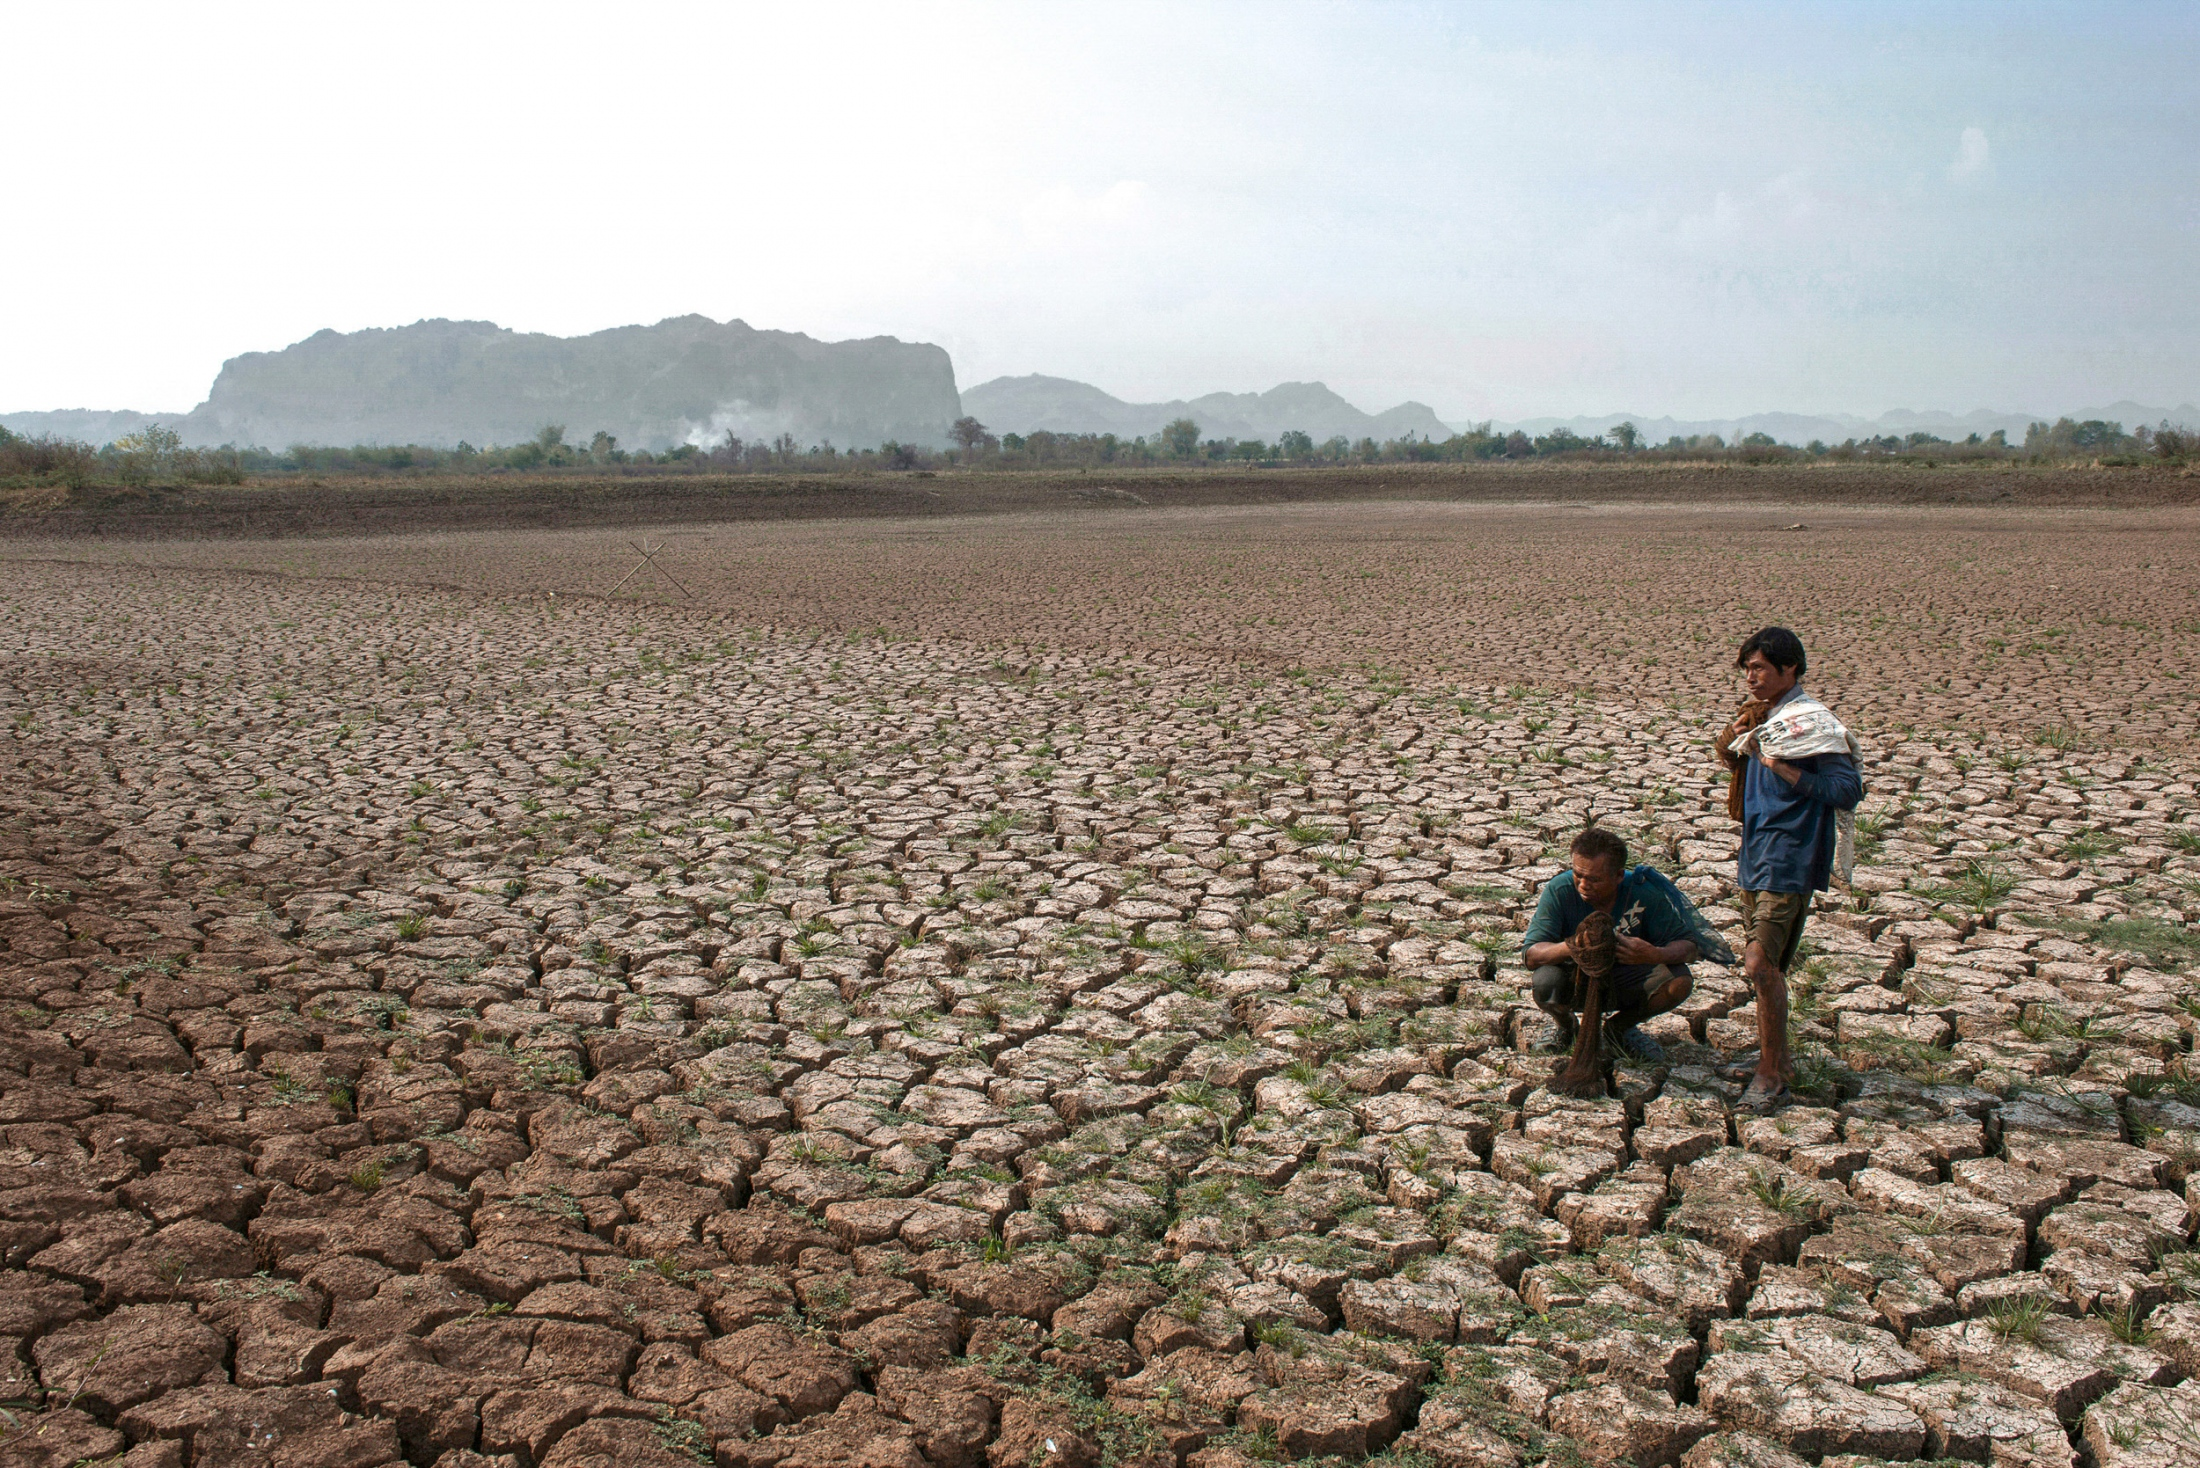 Thailand faced the heaviest drought in decades with an extended dry season and temperatures rocketing above 40 degrees Celsius. The late arrival of annual rains and the deficient precipitation resulted in insufficiency of water for domestic and agricultural uses. Phu Pha Man, Khon Kean, Thailand-April 4, 2016.